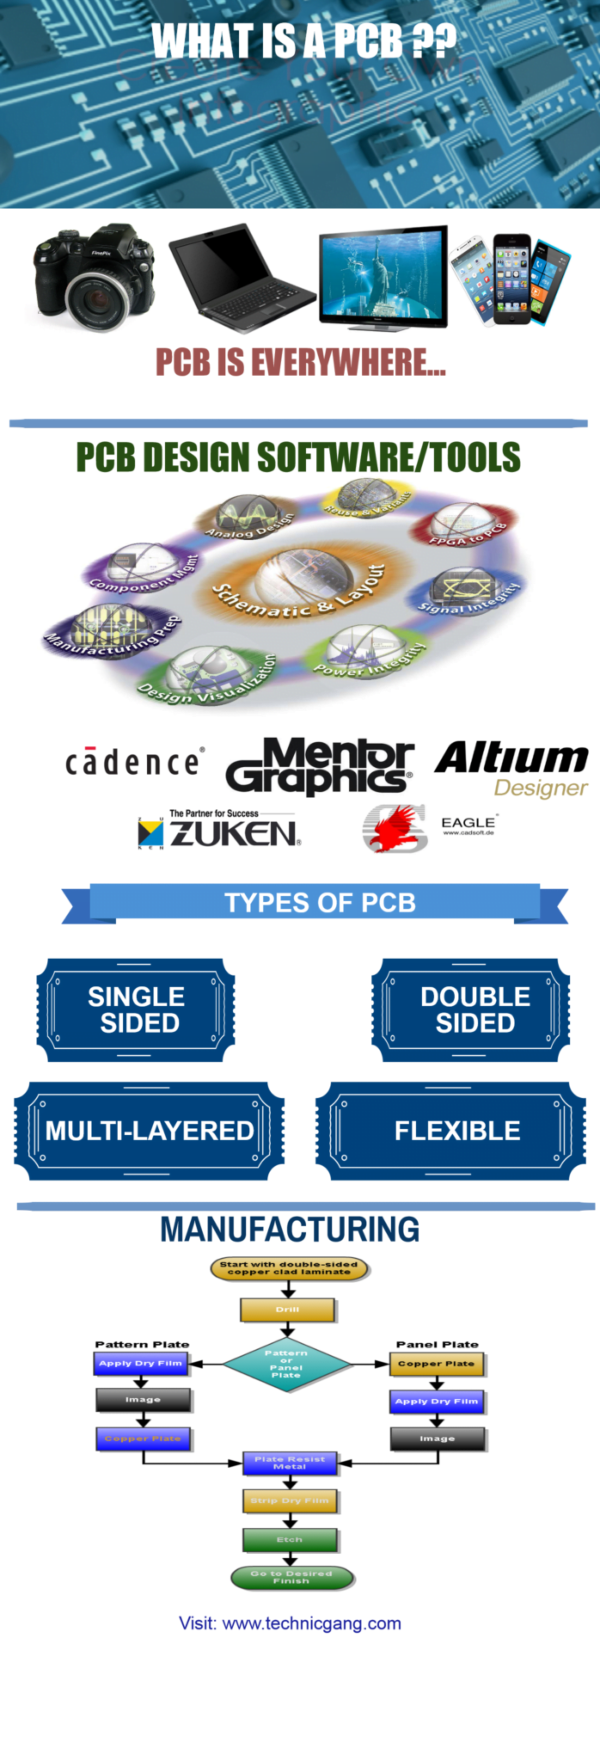 What does PCB stand for